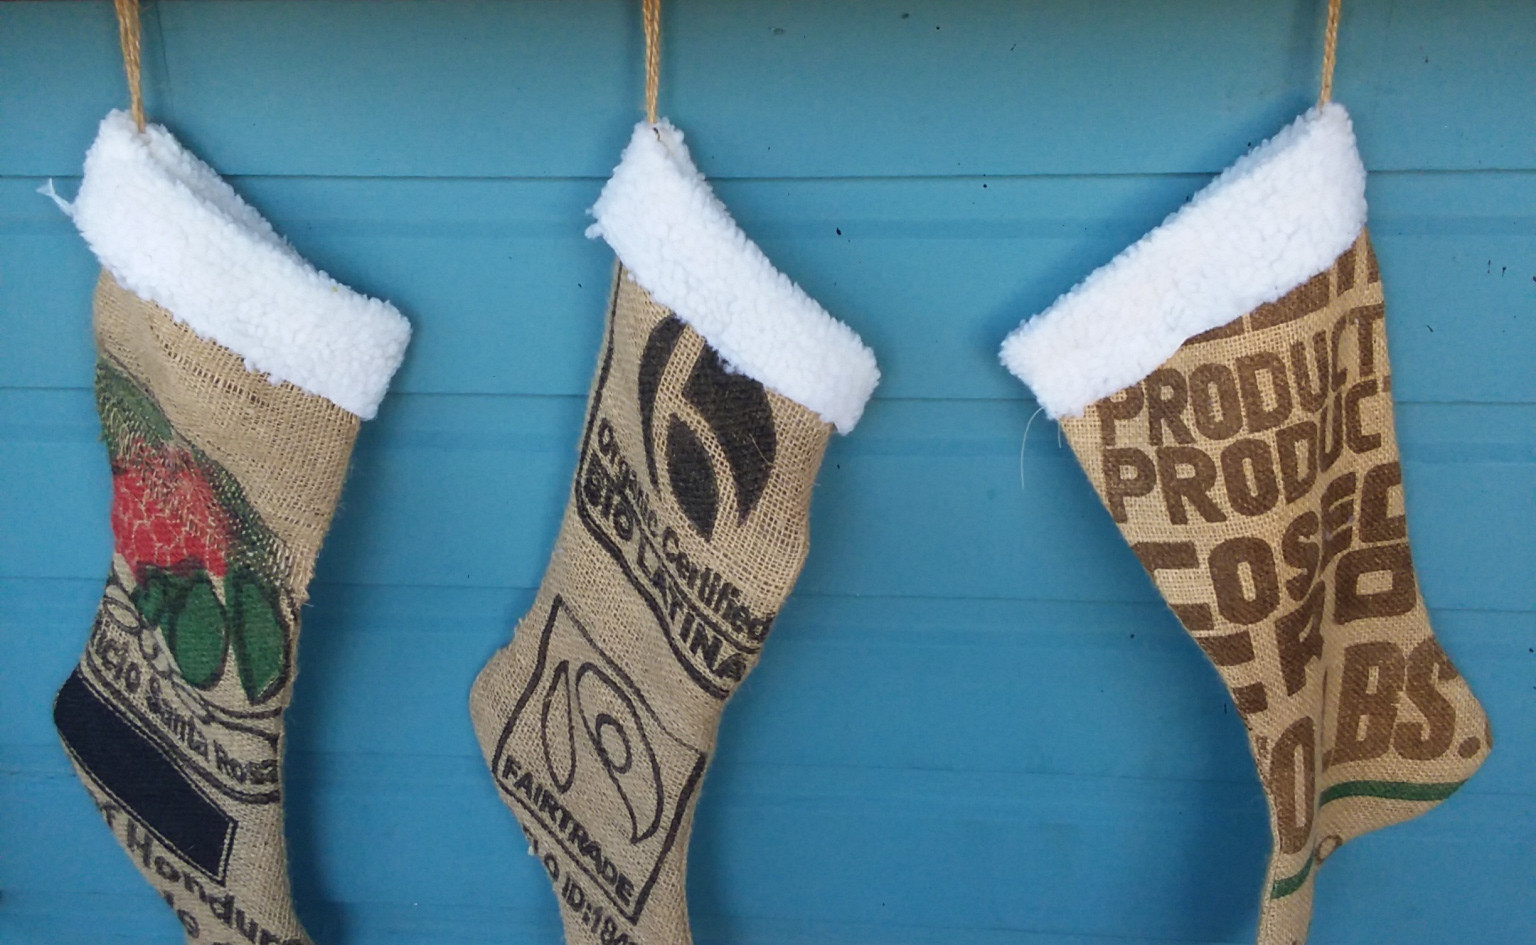 Festive stockings for the holidays